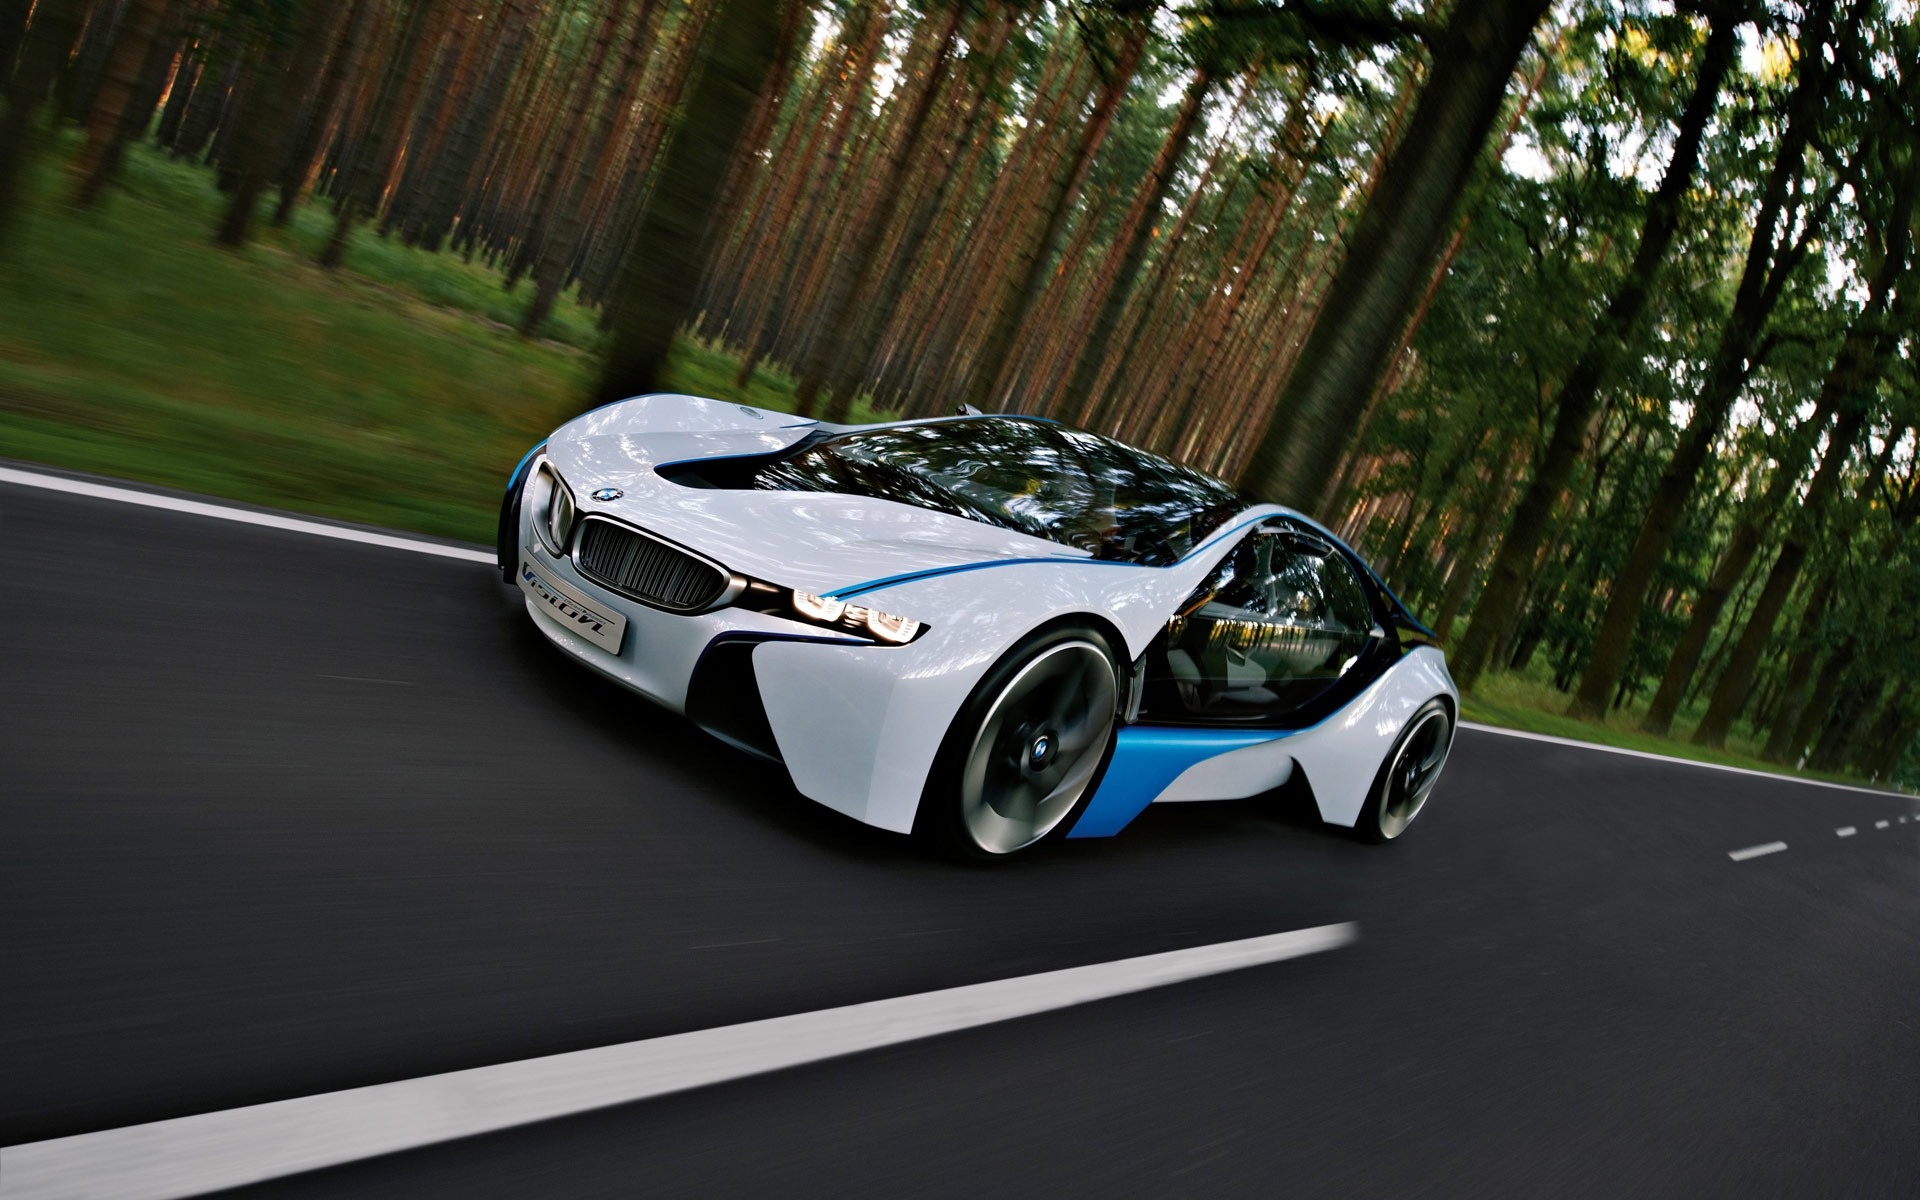 bmw cars wallpapers hd free download 9to5animations com